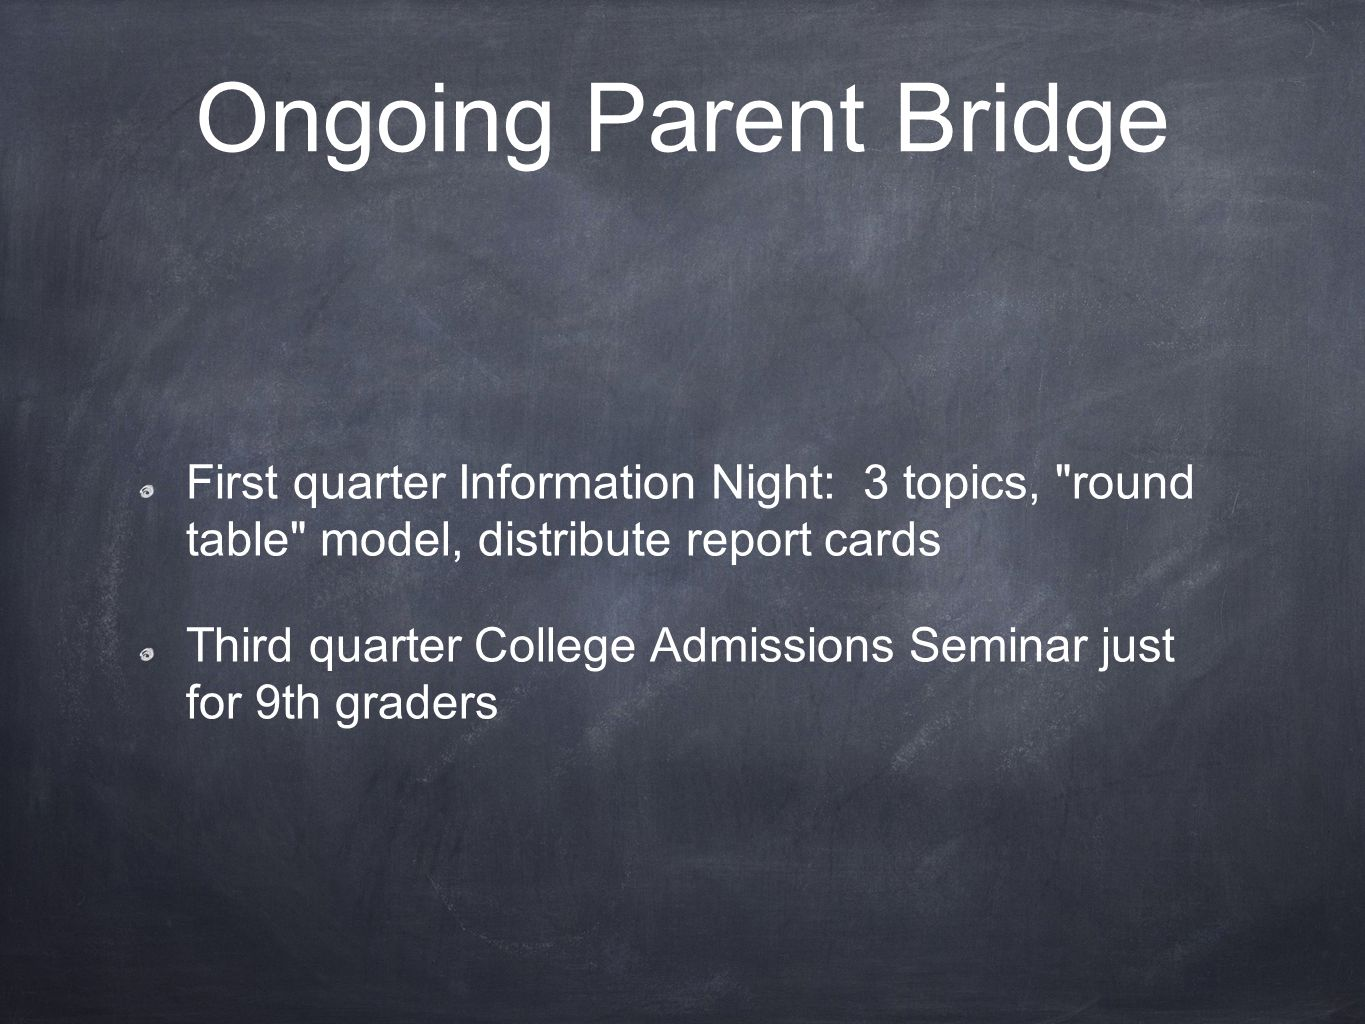 Ongoing Parent Bridge First quarter Information Night: 3 topics, round table model, distribute report cards Third quarter College Admissions Seminar just for 9th graders